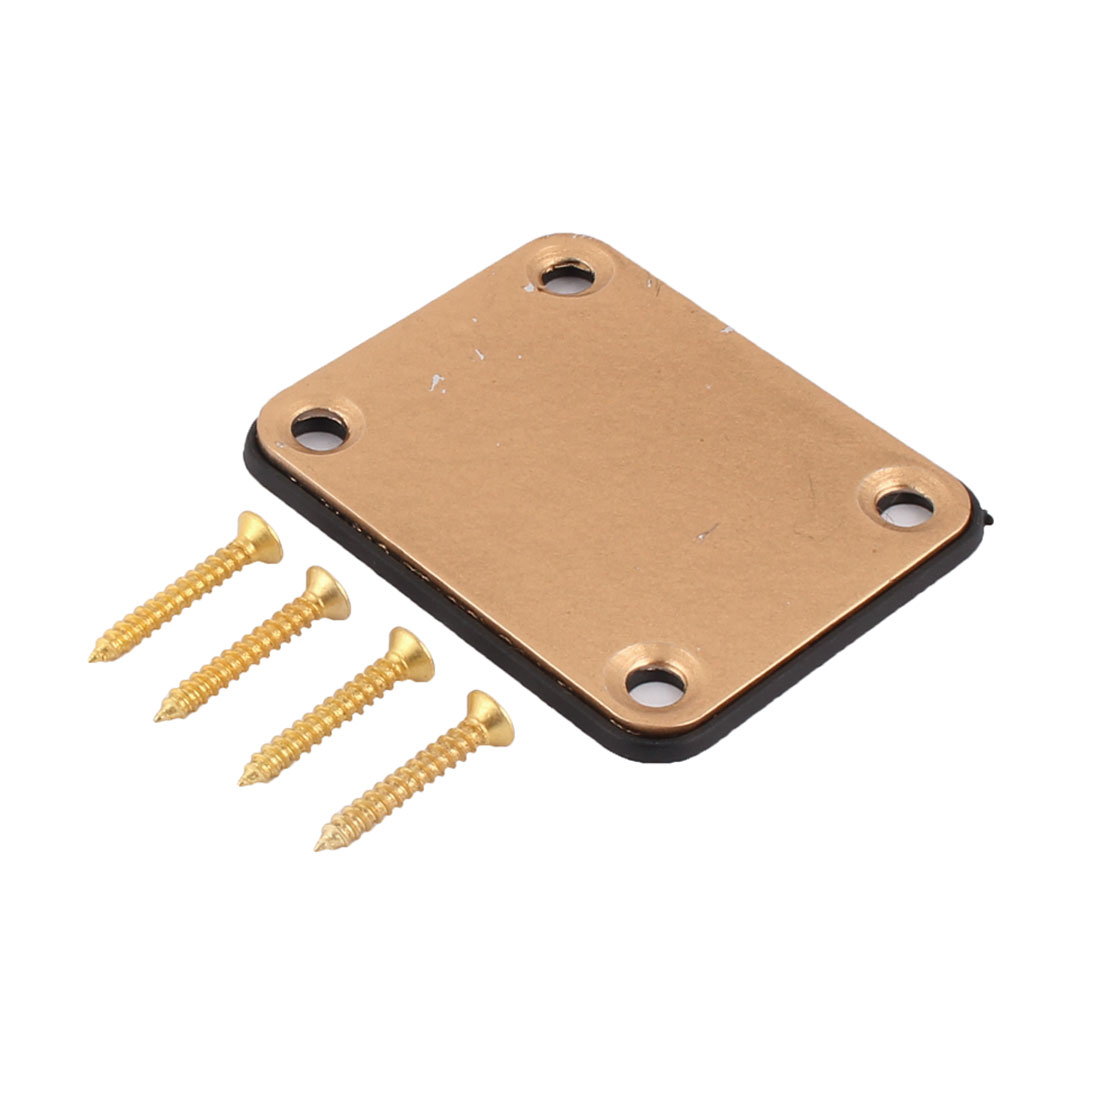 67mm x 55mm x 4mm Rectangular Replacement Electric Guitar Neck Plate Gold Tone